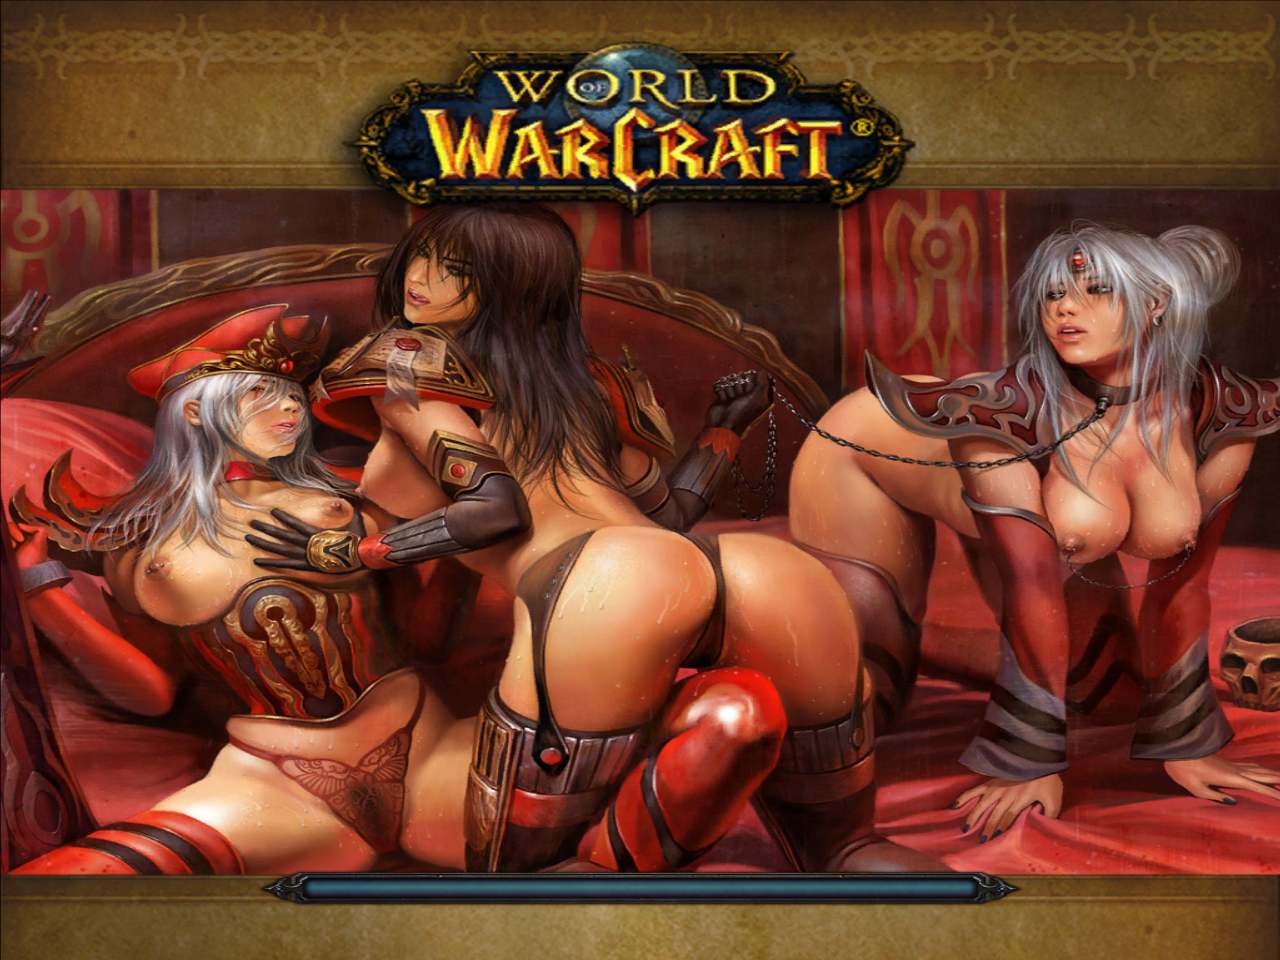 World of warcraft naked girls mods erotic thumbs